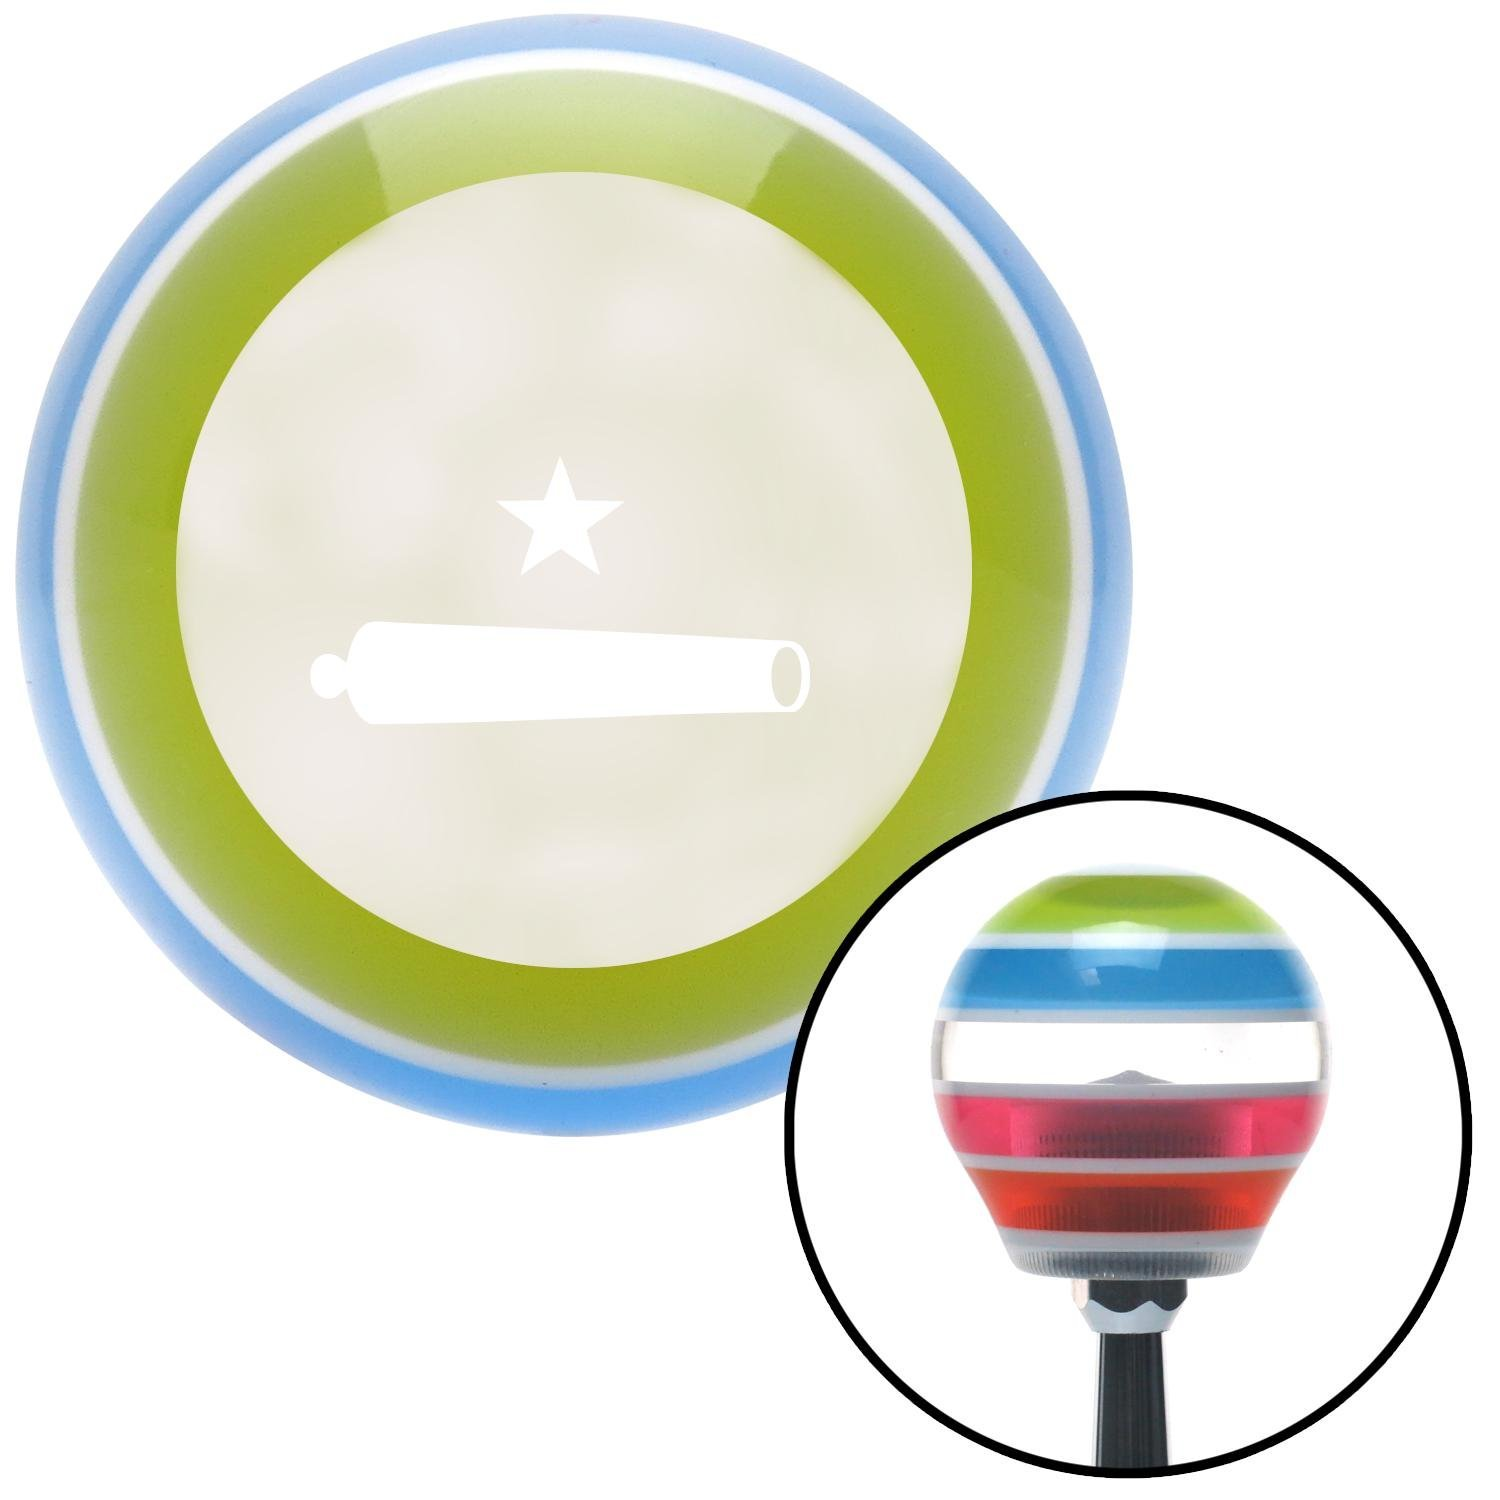 White Come and Take It American Shifter 134717 Stripe Shift Knob with M16 x 1.5 Insert